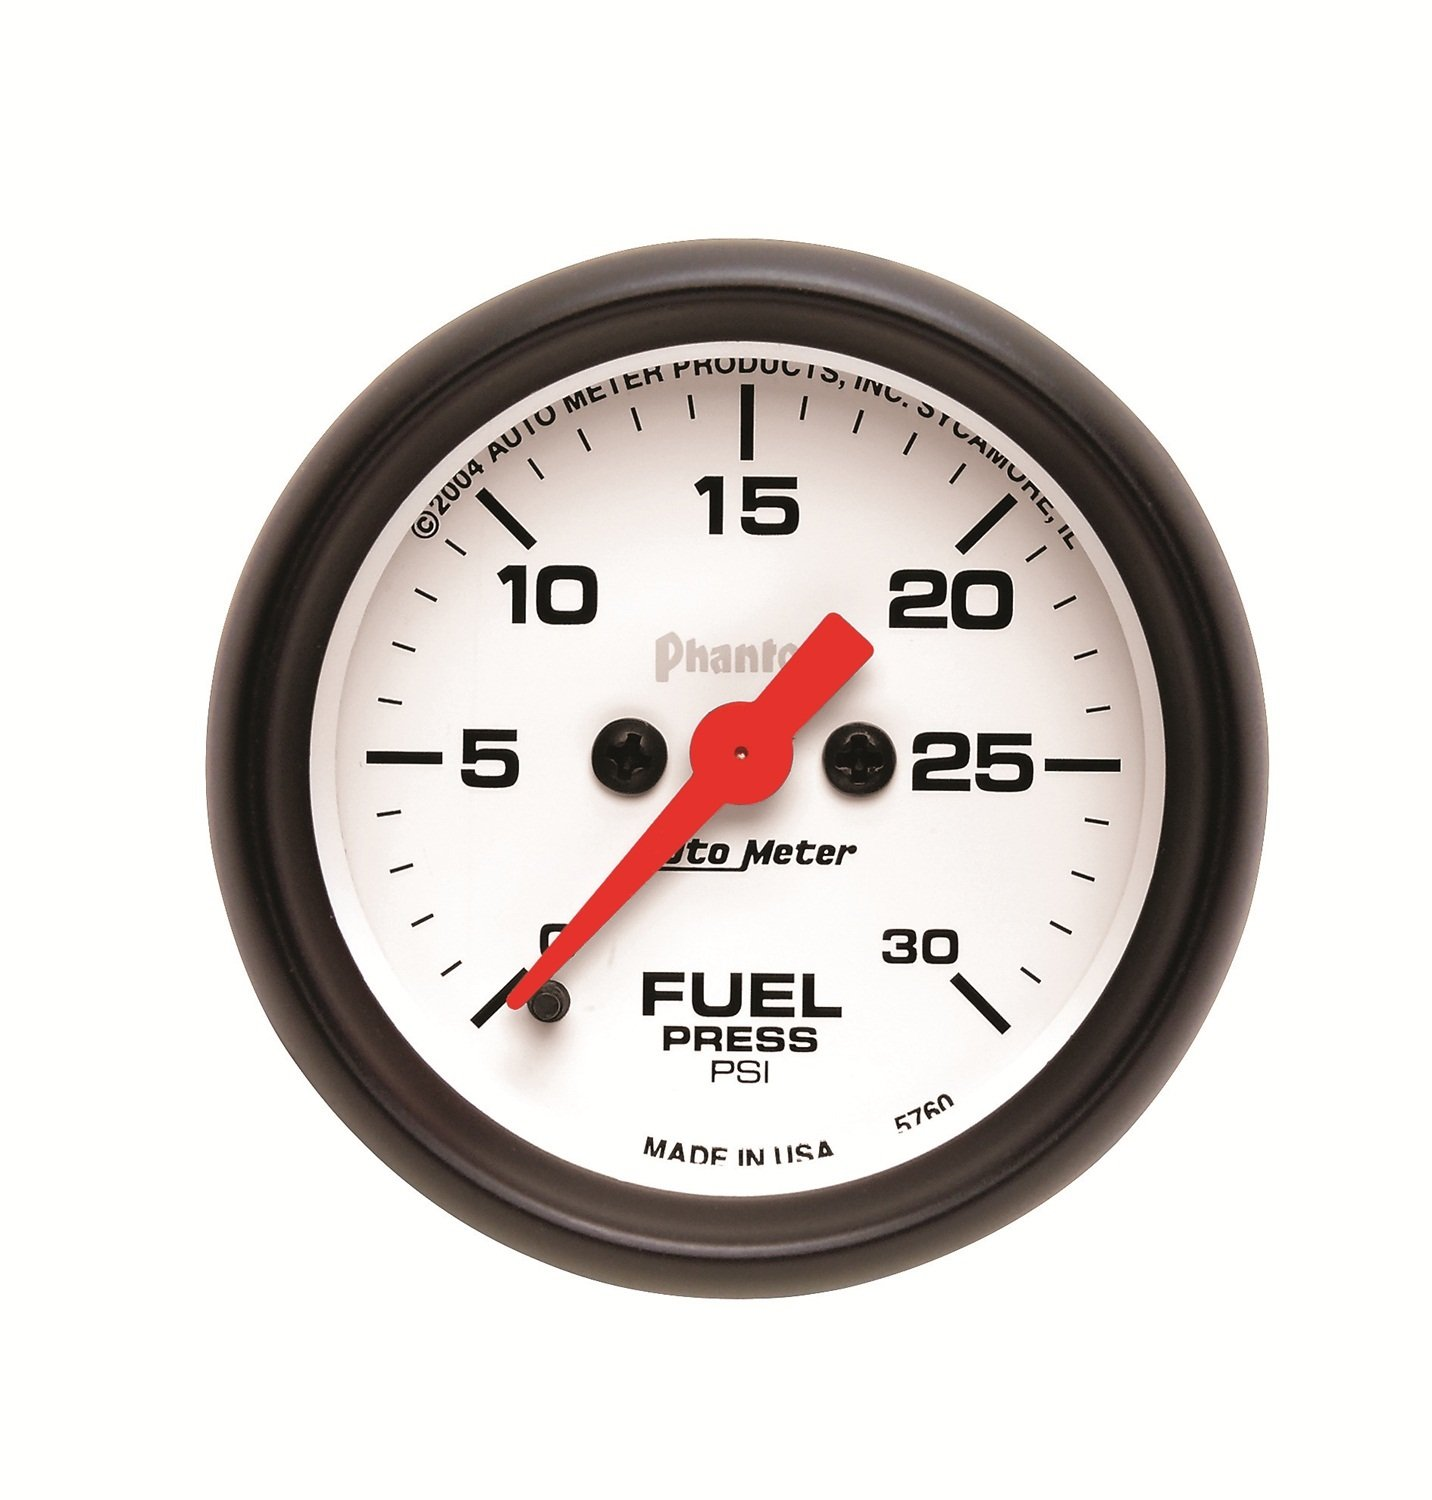 Auto Meter 5760 Phantom Electric Fuel Pressure Gauge